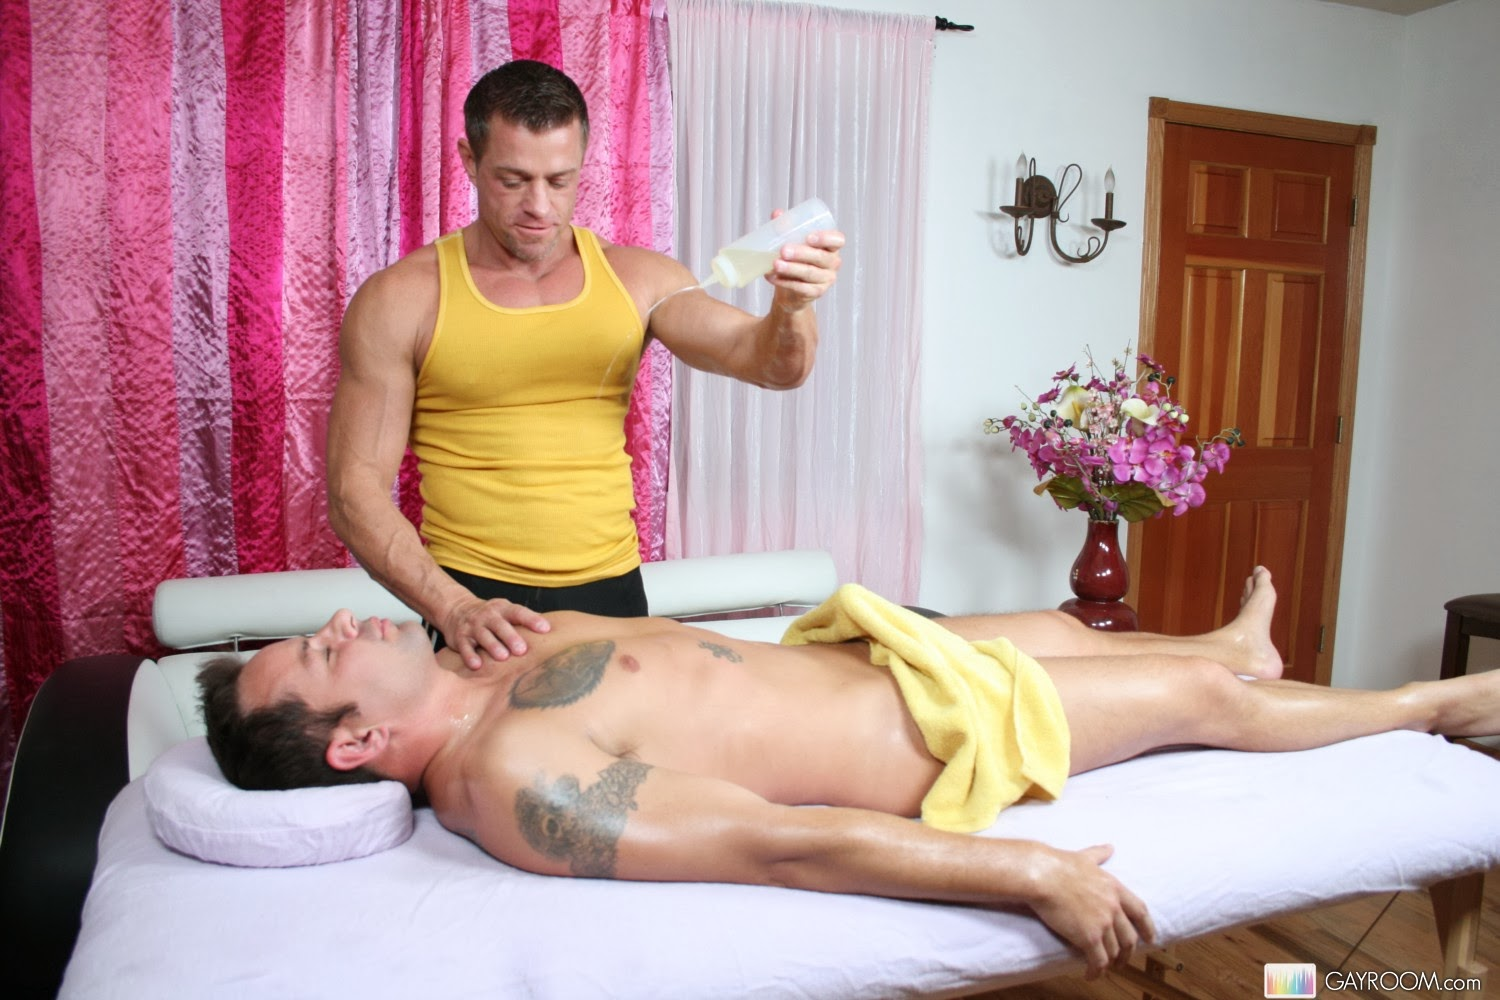 nude-male-massage-by-woman